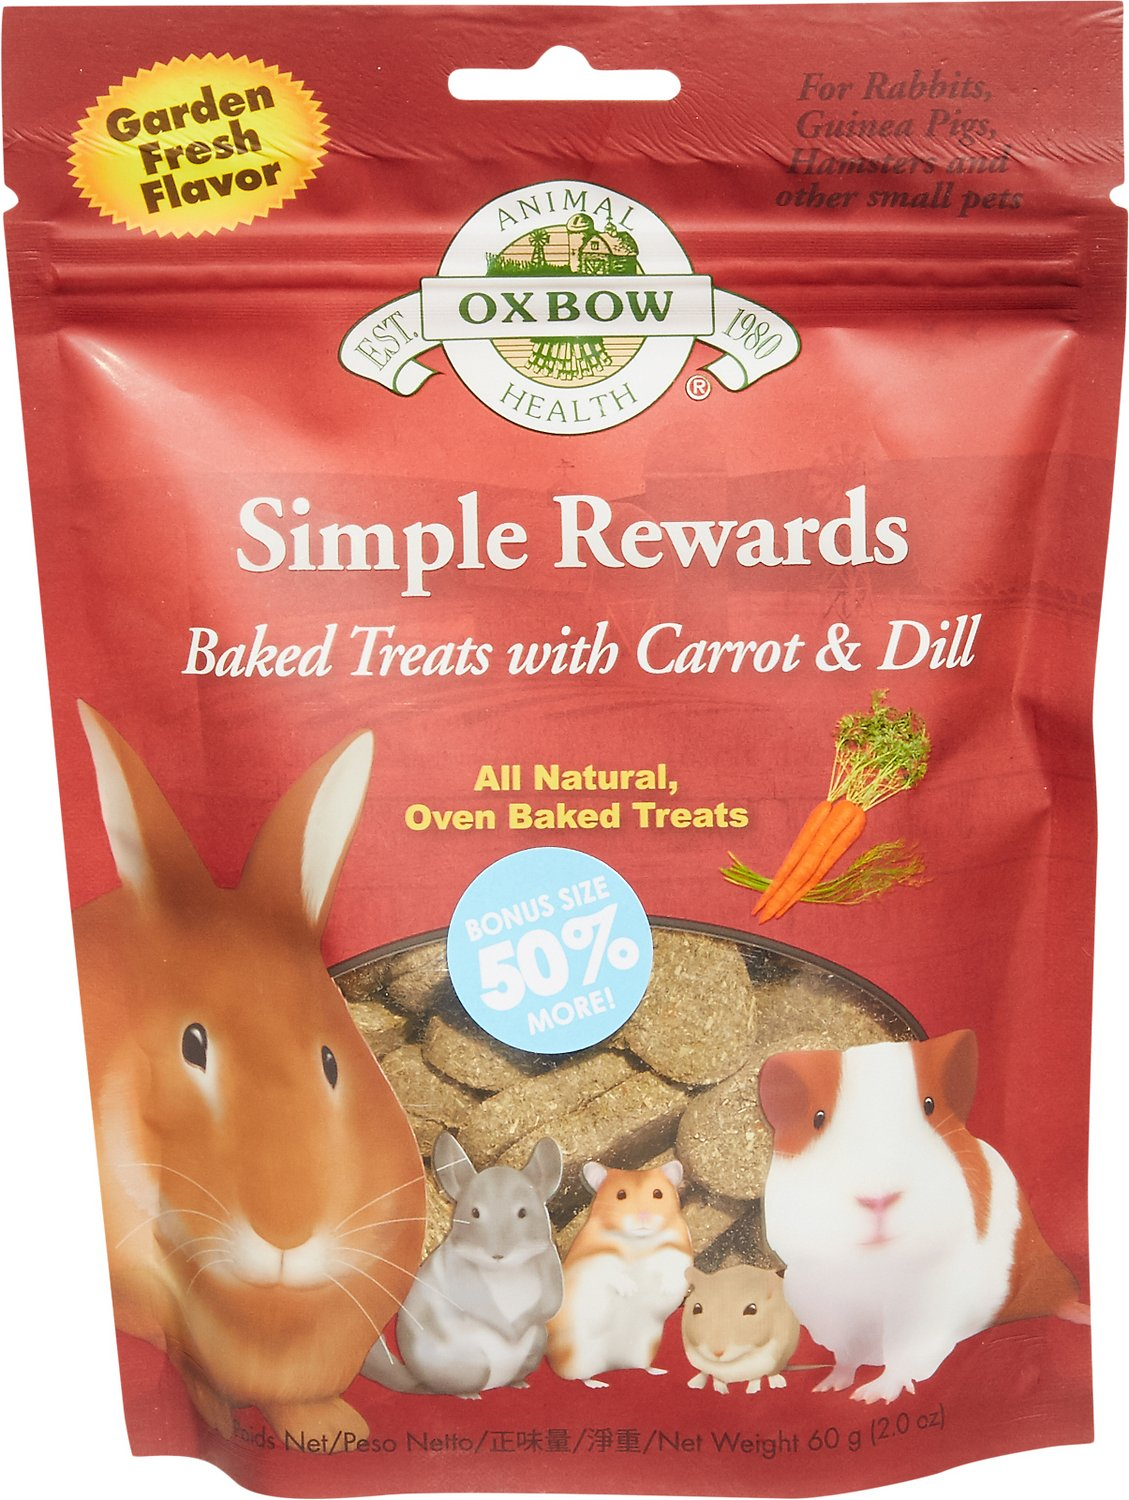 Oxbow Simple Rewards Oven Baked with Carrot & Dill Small Animal Treats, 2-oz bag Image